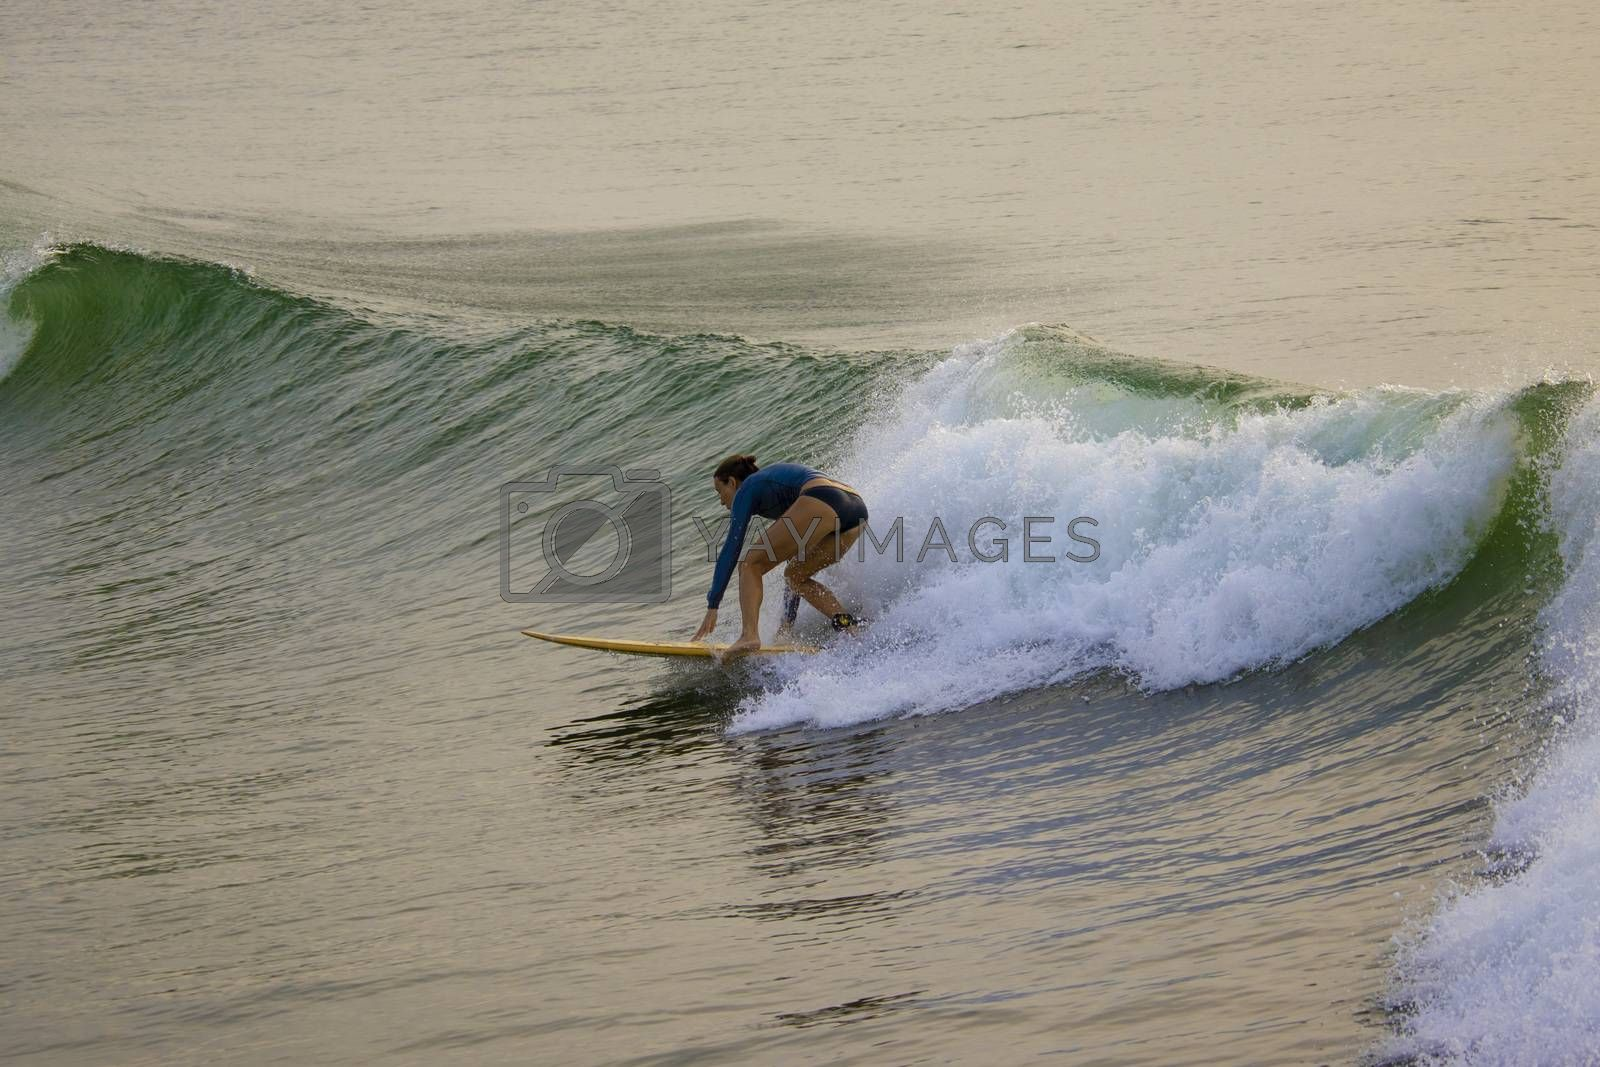 Chennai, Tamilnadu -India . September 2, 2020. A foreign lady tourists surfing the sea waves